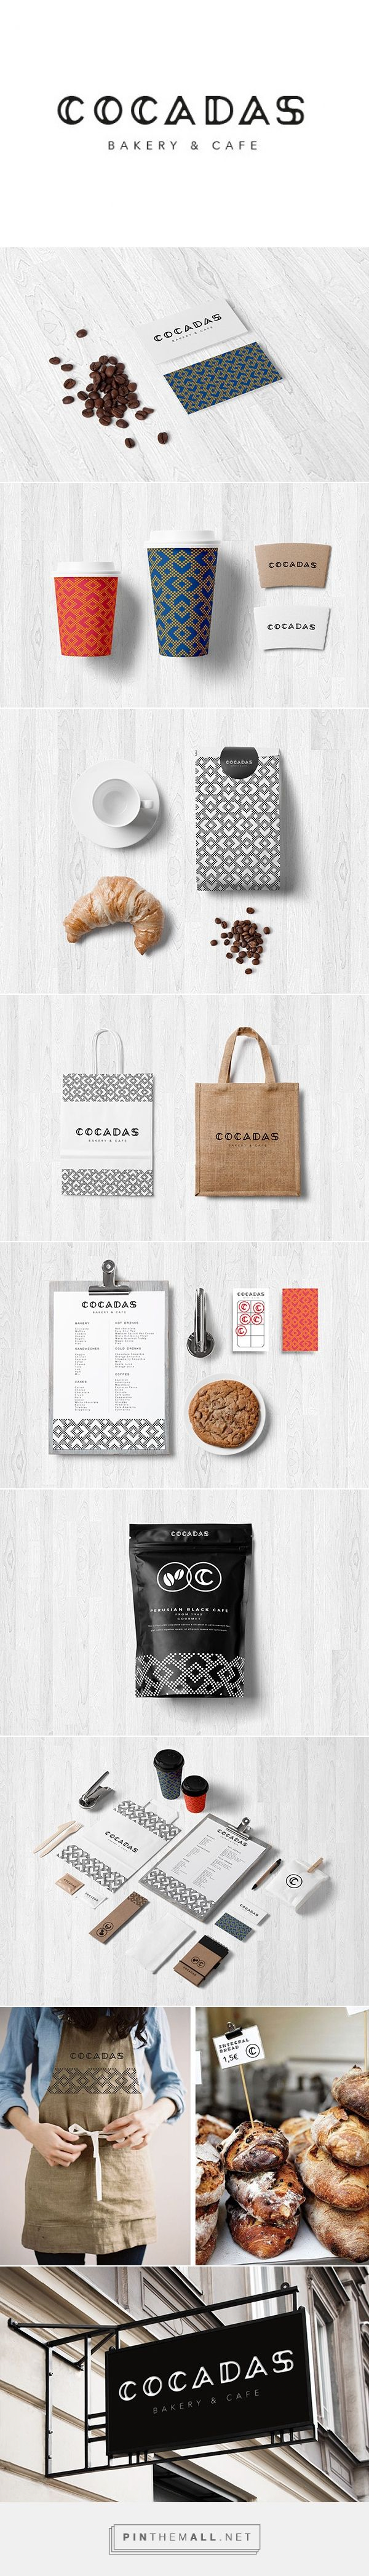 C O C A D A S - Bakery & Cafe on Behance by Laia Gubern curated by Packaging Diva PD. Tasty identity packaging branding. Who wants to go : )